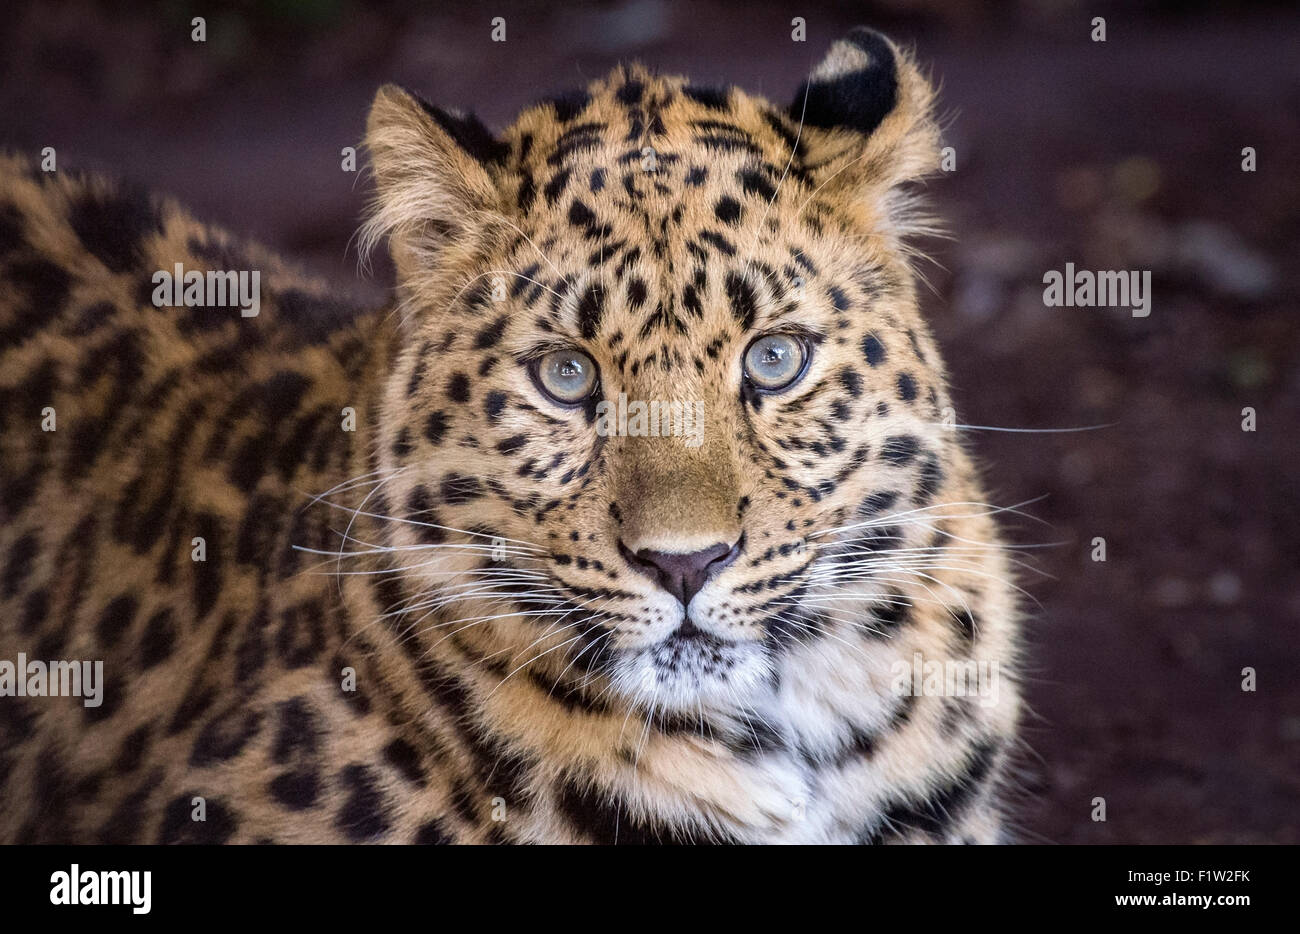 Young Amur leopard staring at camera - Stock Image